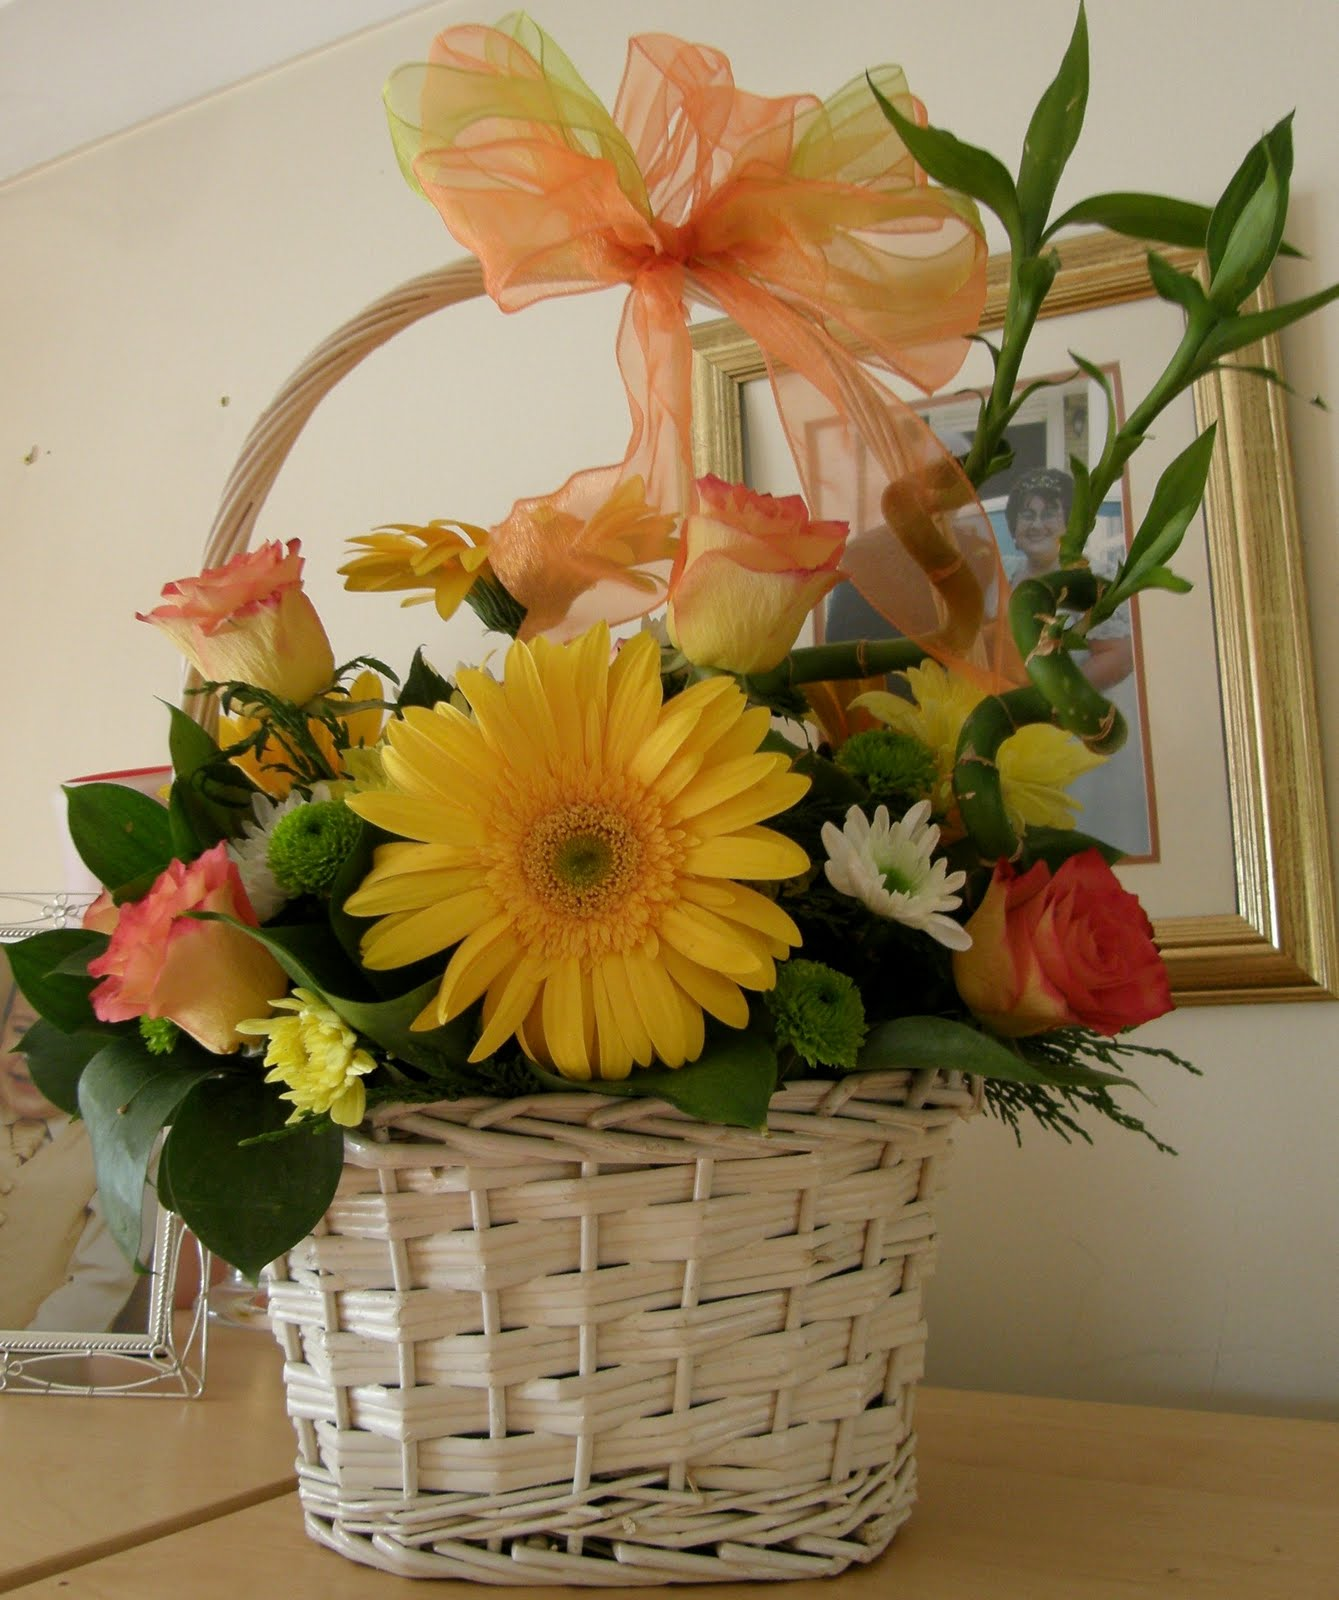 Sues Family Flowers And Fun Stuff Flowers Church Flowers And